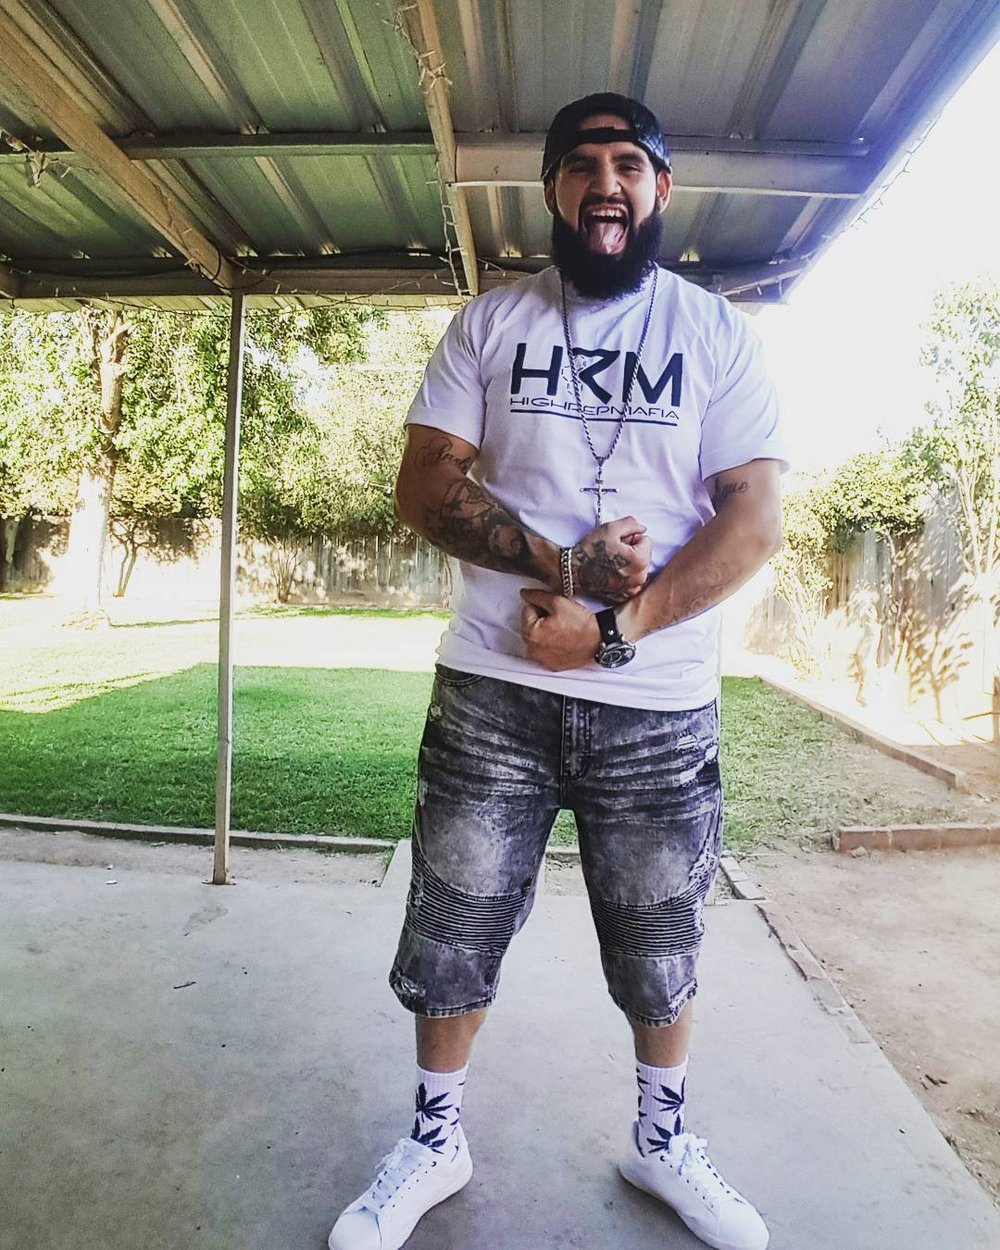 Jose Lopez Jose Lopez utilized the benefits of cannabis to help him loose over 100 lbs! He is also the founder of High Rep Mafia. HRM is a clothing line and inspirational brand promoting cannabis as part of a healthy and active lifestyle. The HRM is a brand of positivity, support, and encouragement!  Instagram  Website